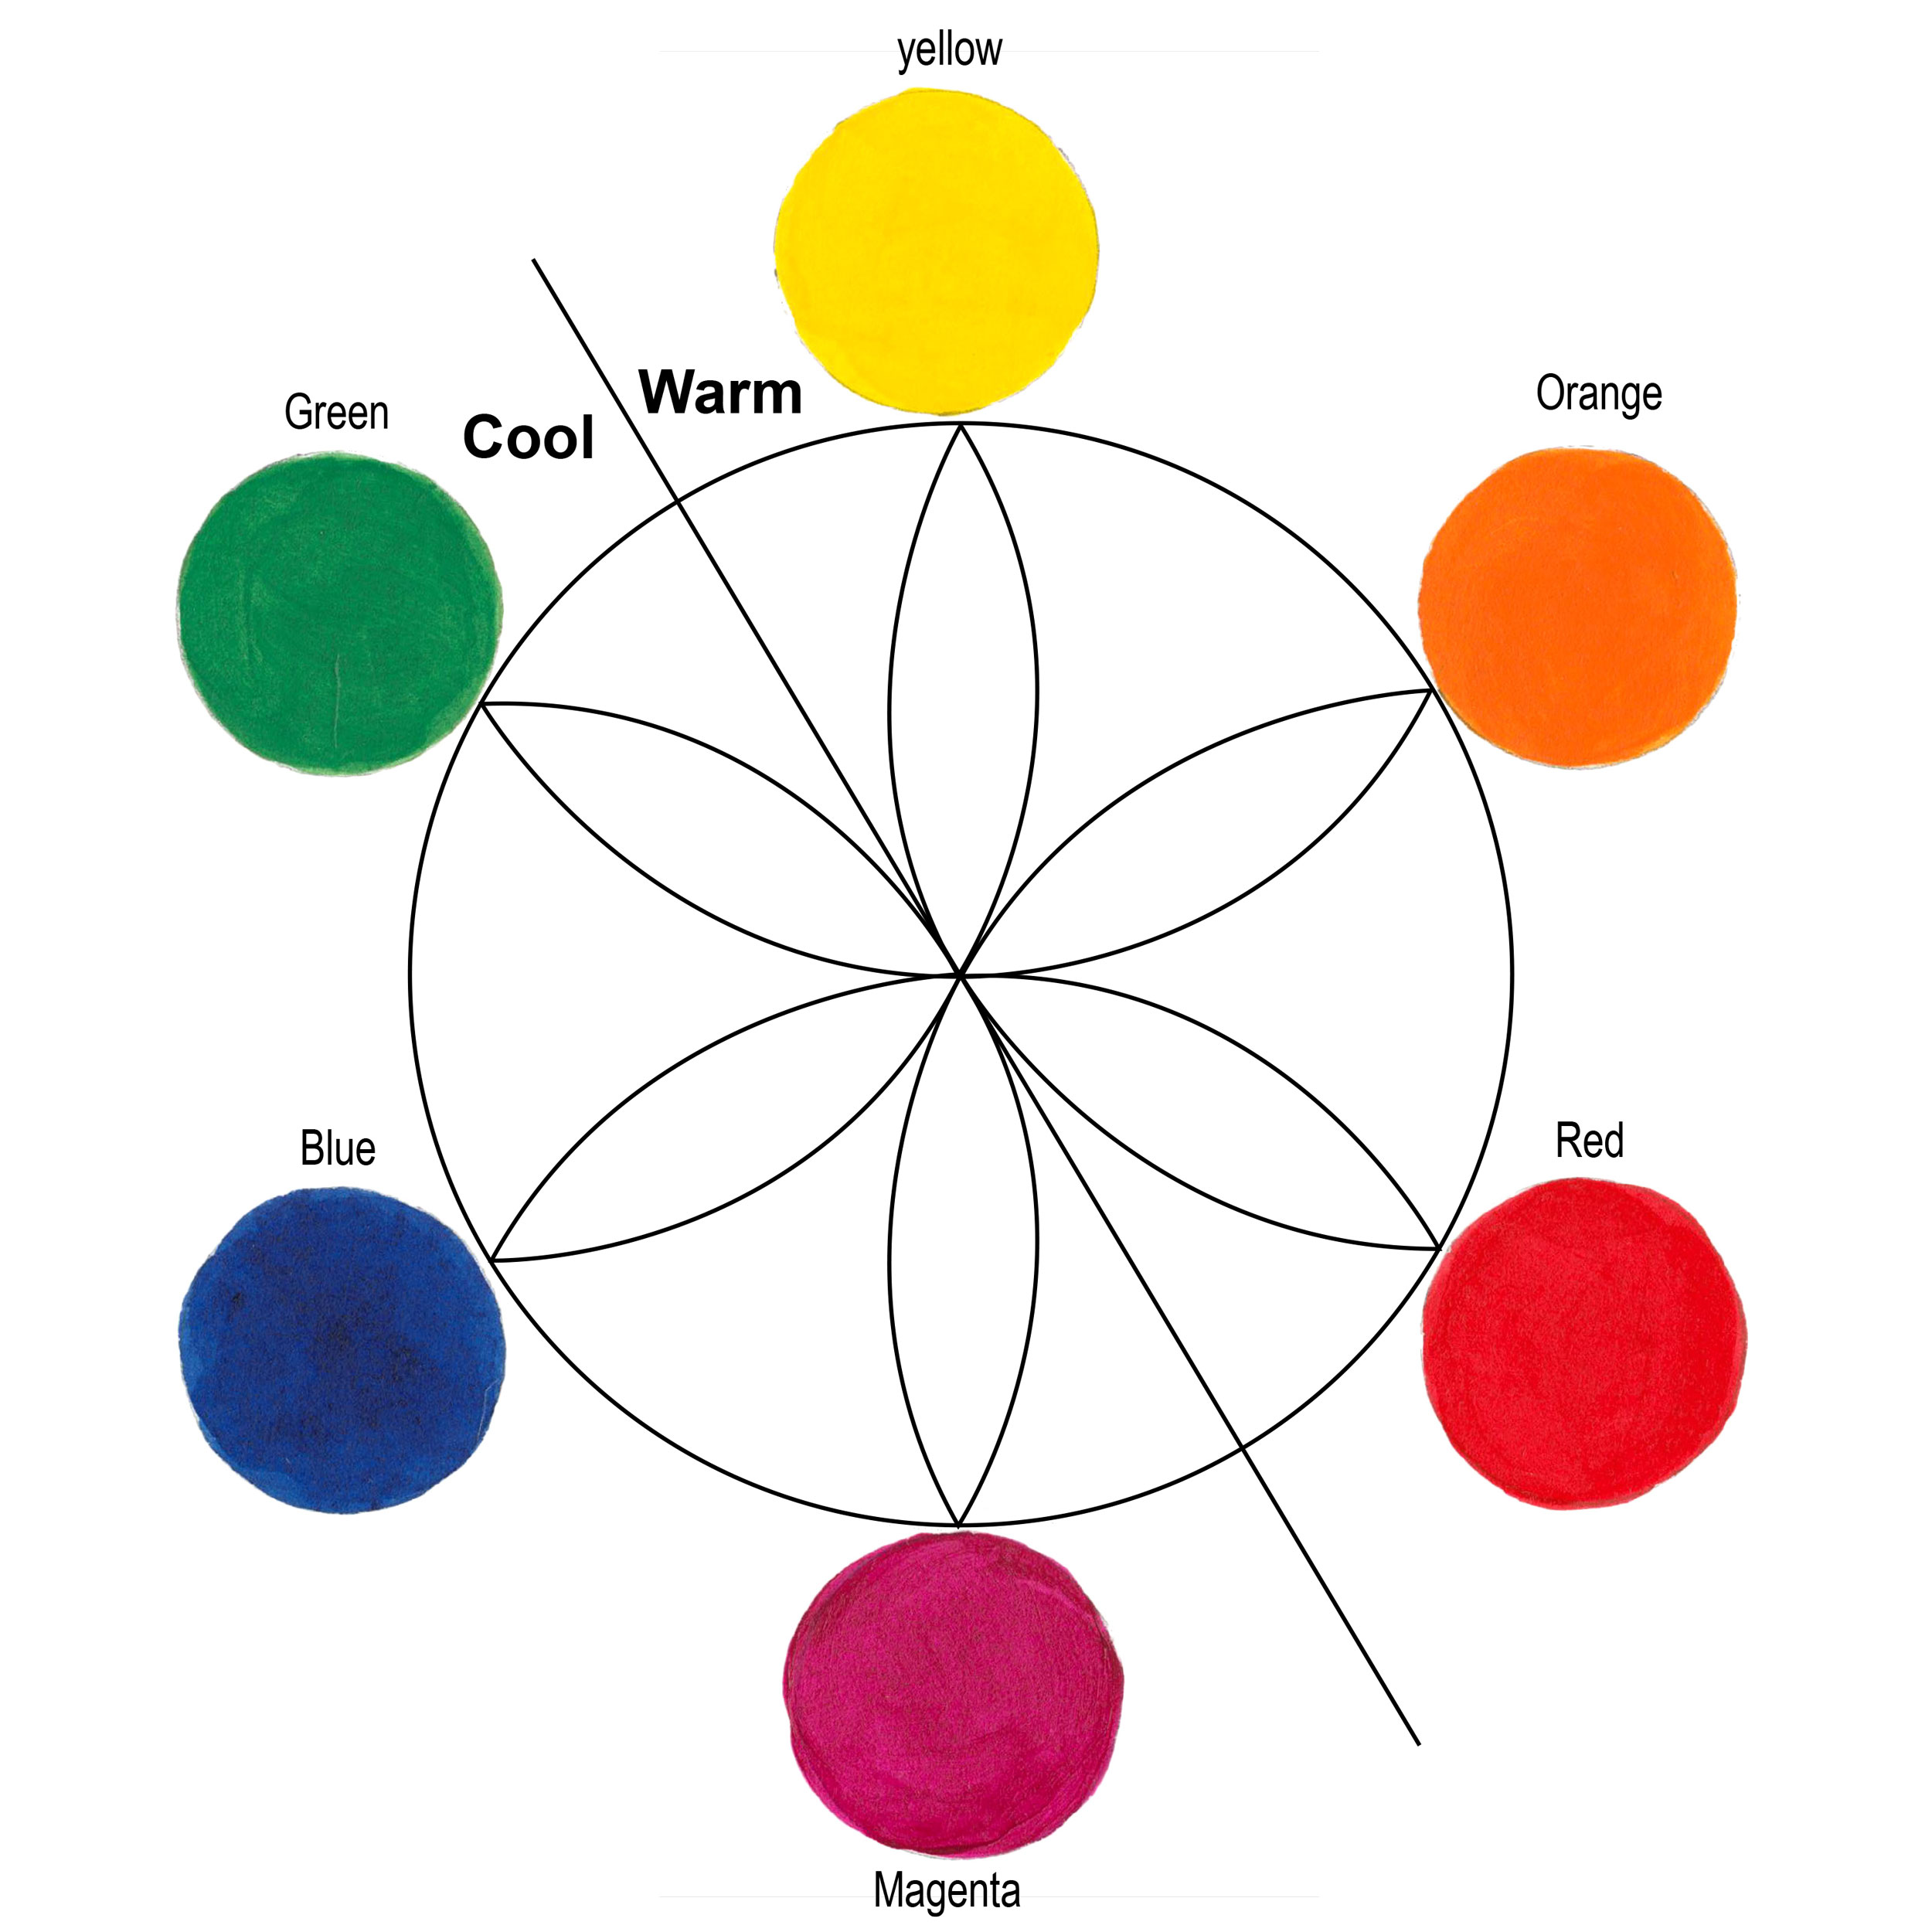 Color theory online games - Figure 2 The Classic Color Wheel Divided Into Cool And Warm Halves